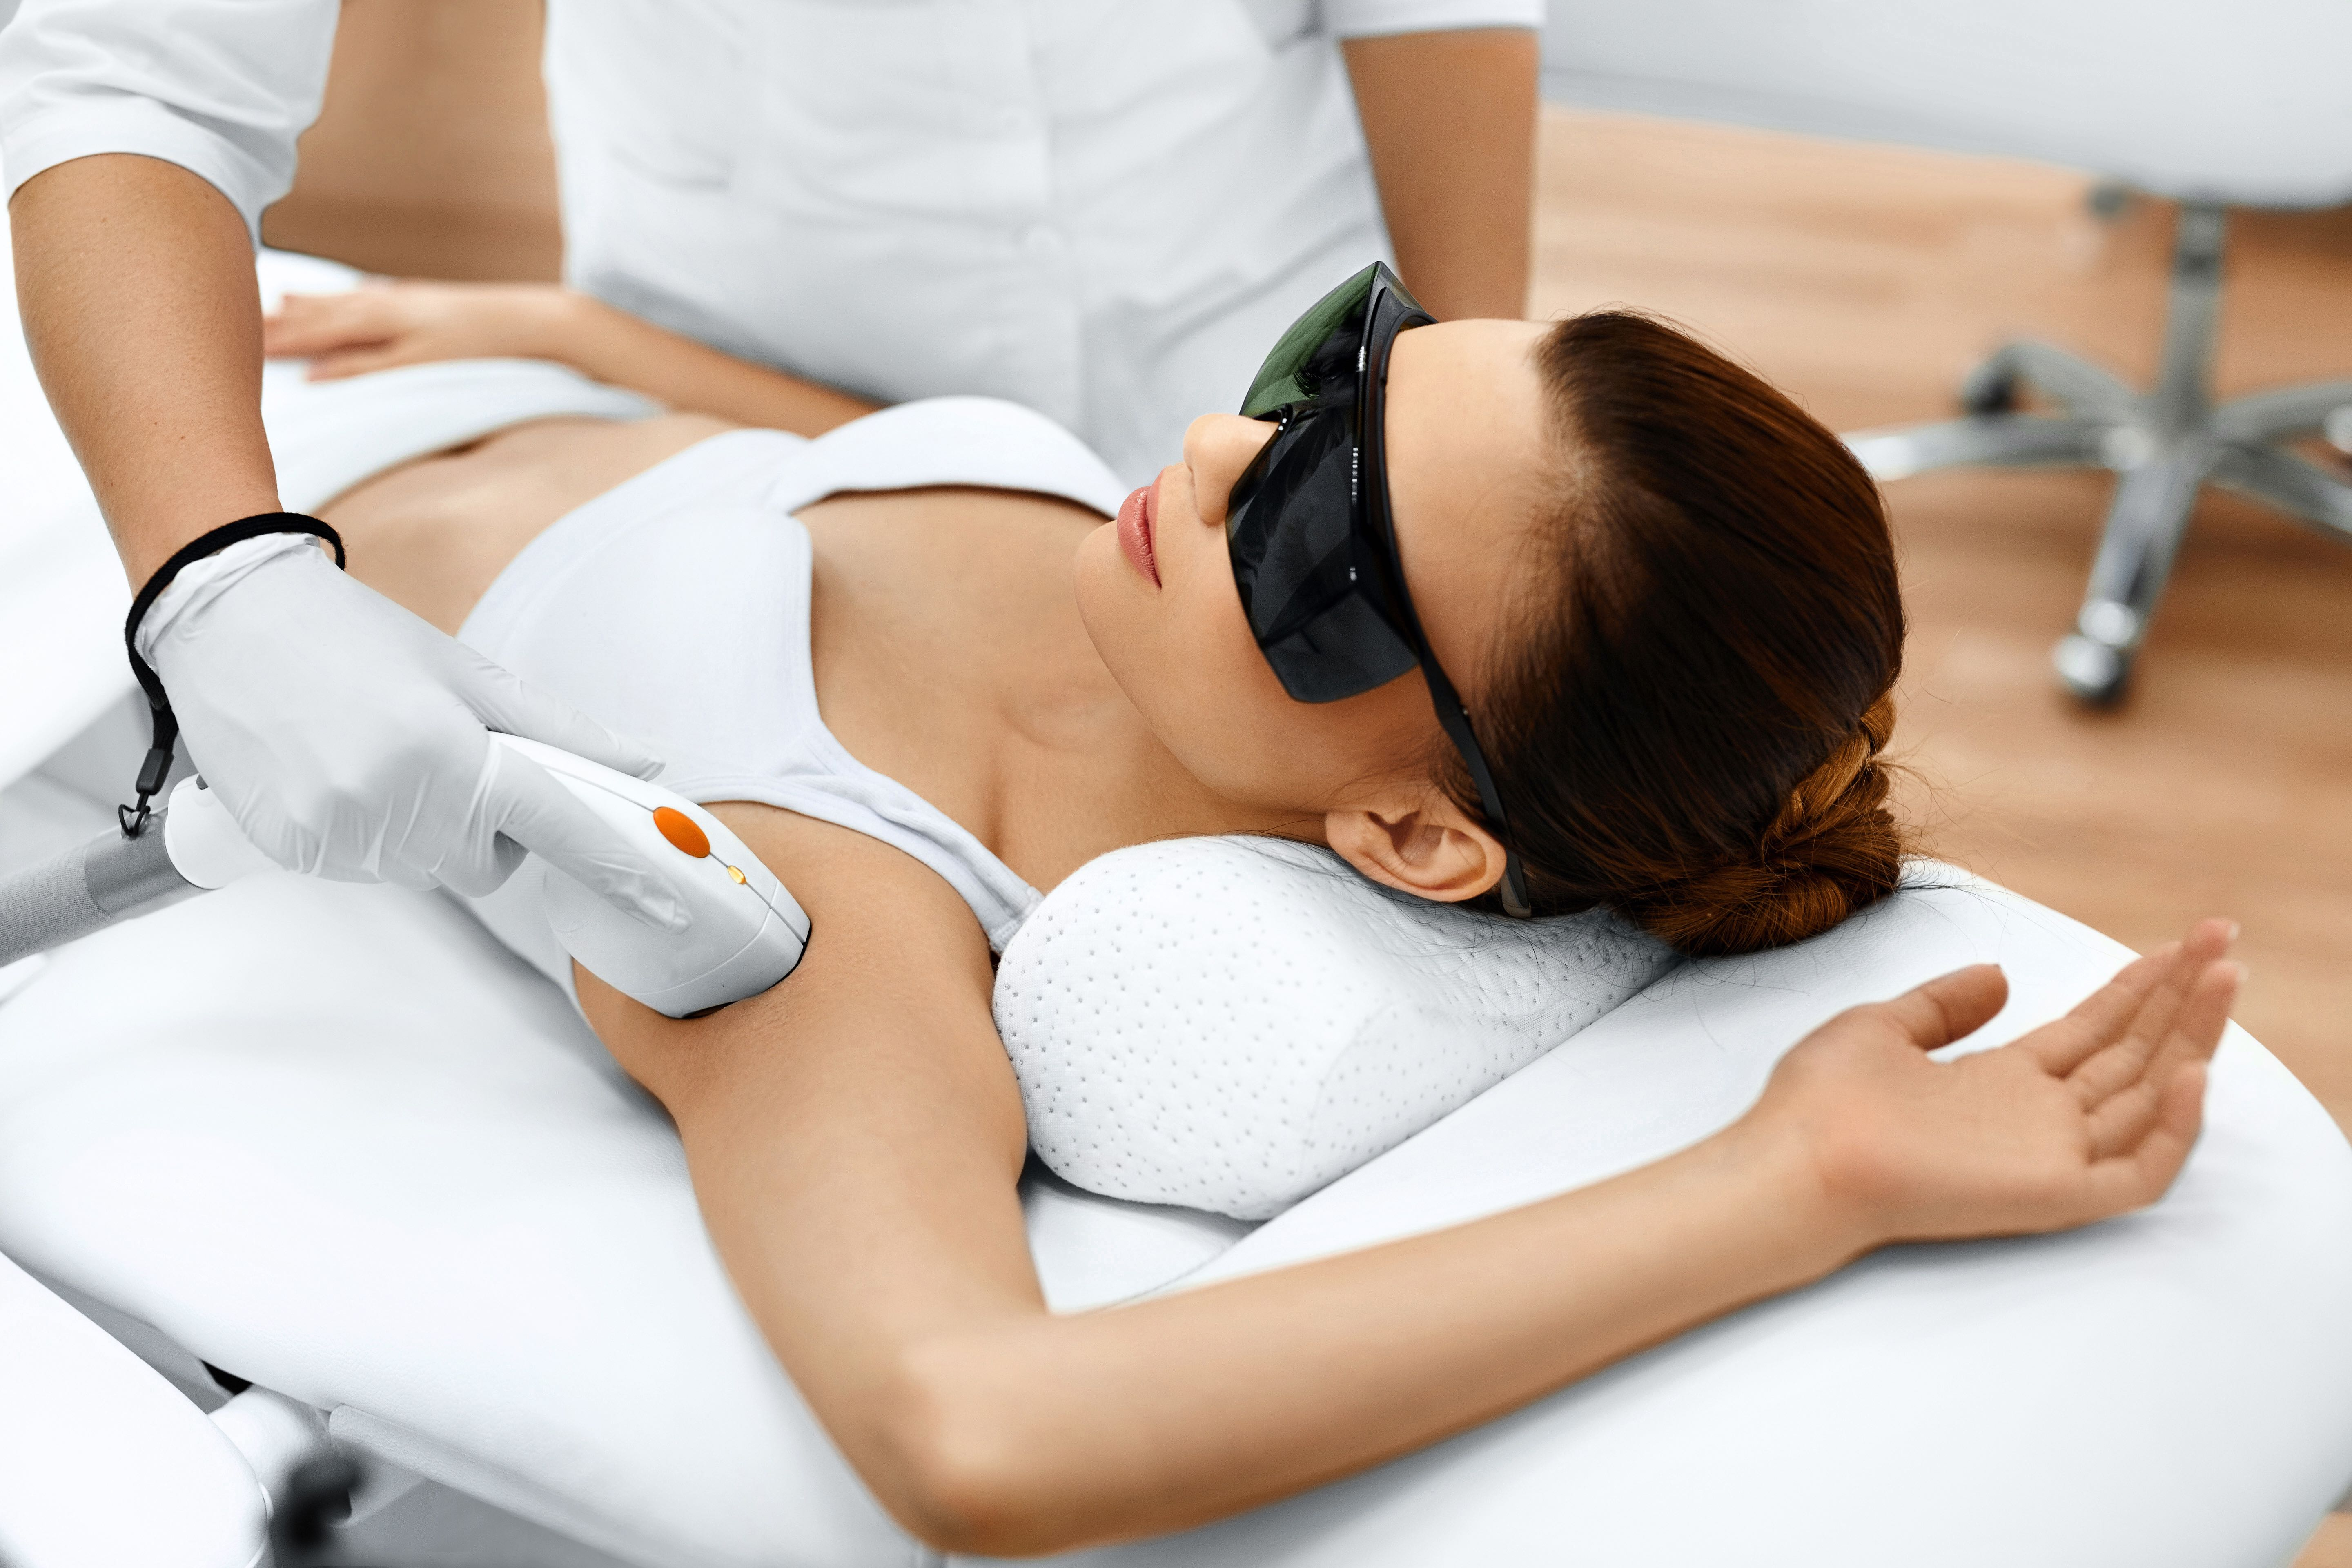 Laser technician at IGBeauty using LightSheer Duet laser on patient